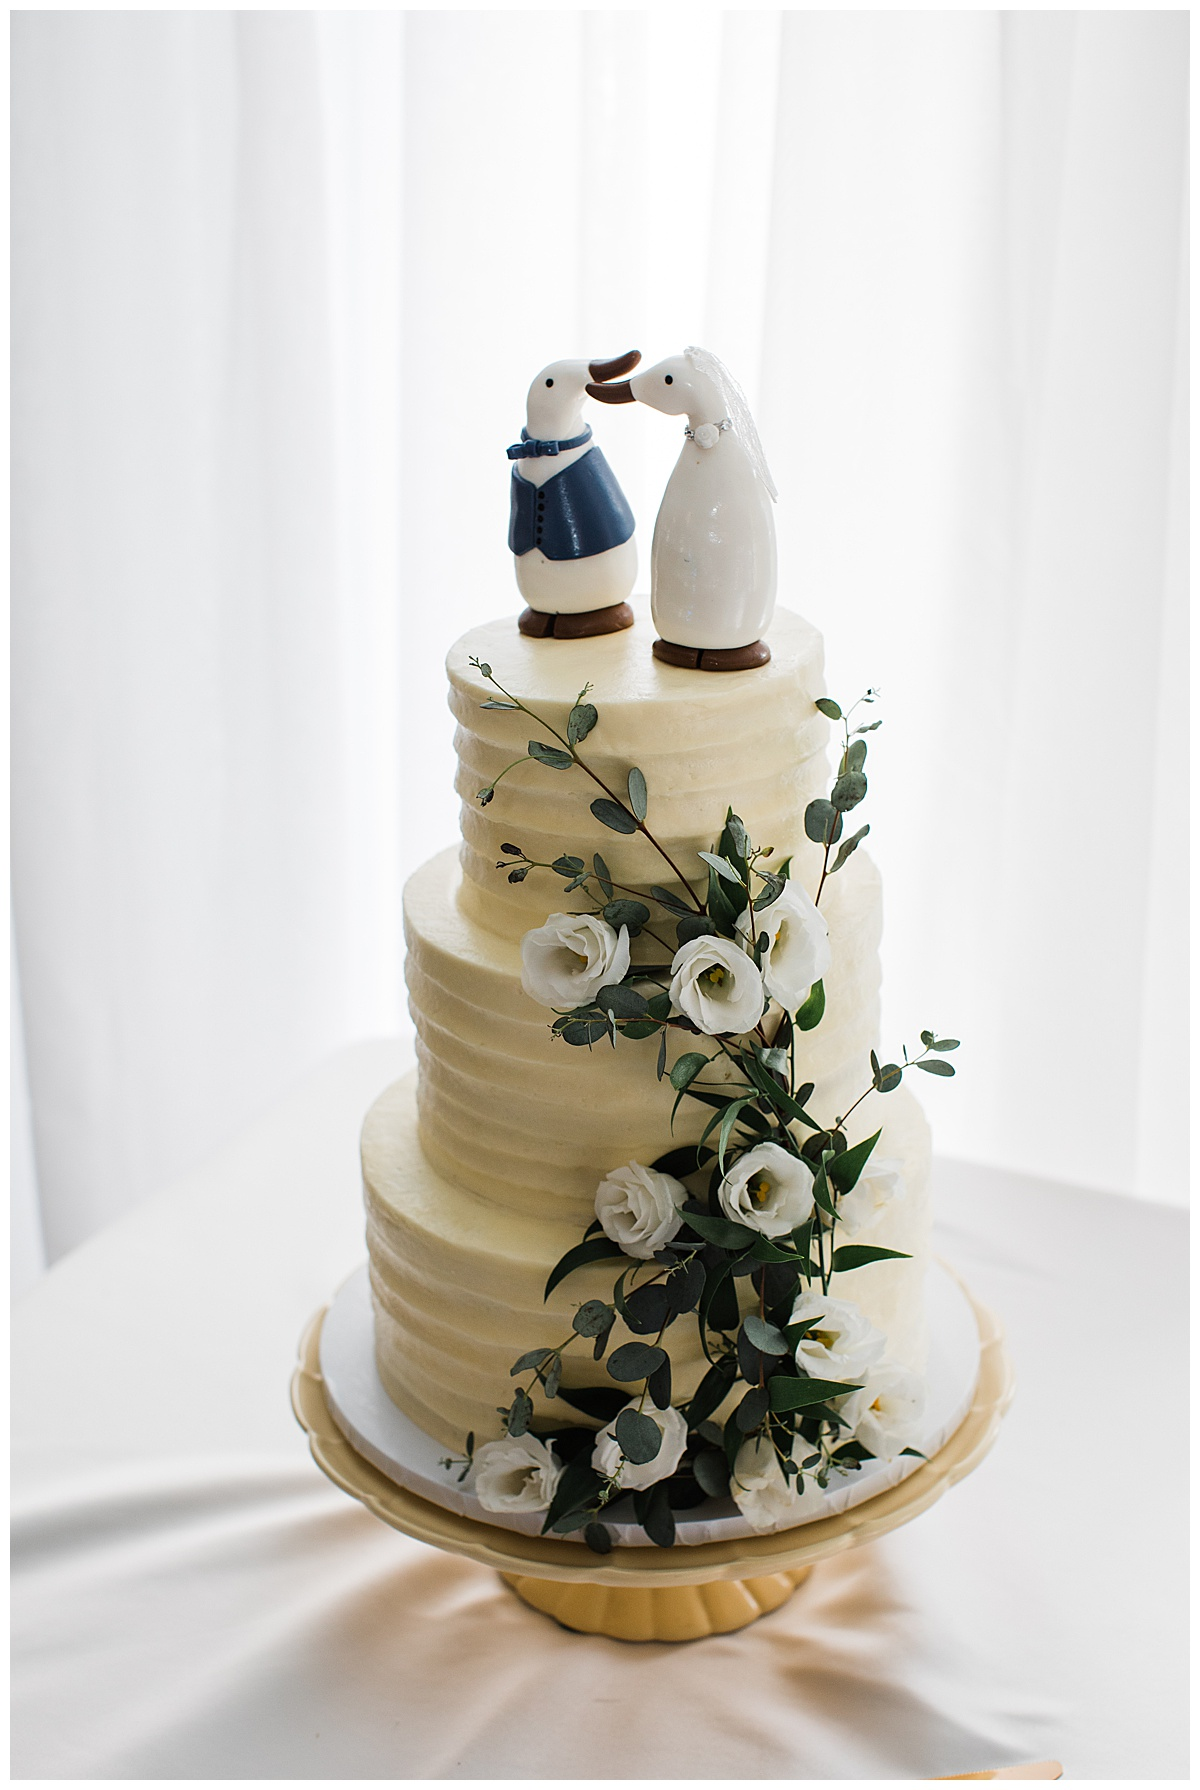 Wedding cake with penguin cake toppers  Ontario wedding  Toronto wedding photographer  3photography